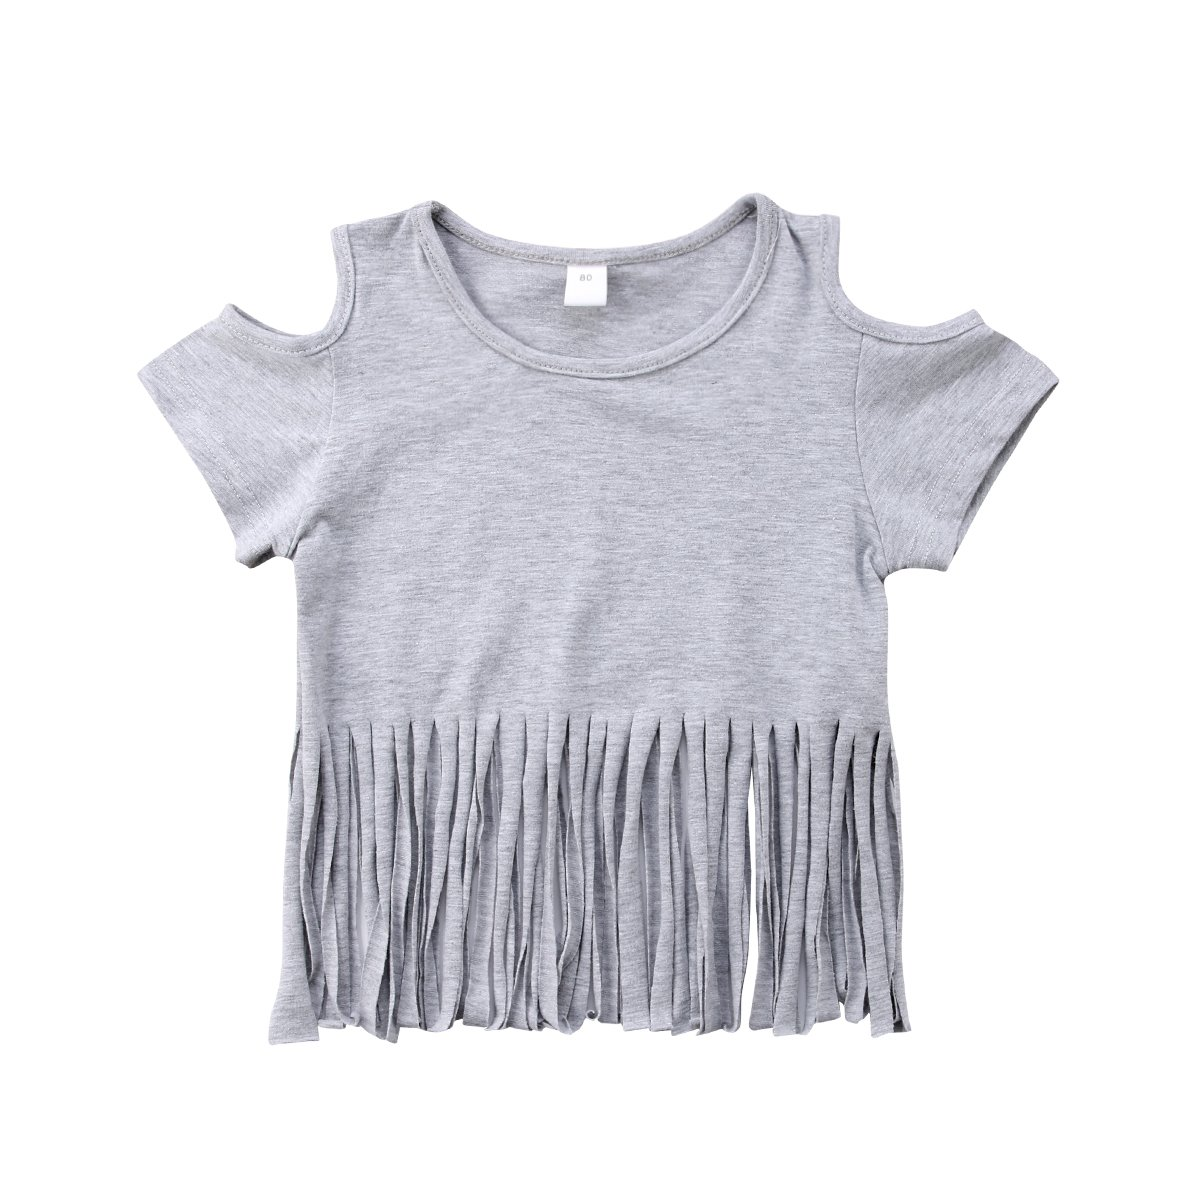 Pheobe Bee Baby Girls Cold Shoulder Tops with Fringe Tassel Hem Short Sleeve Blouses Cute Cotton T-Shirt